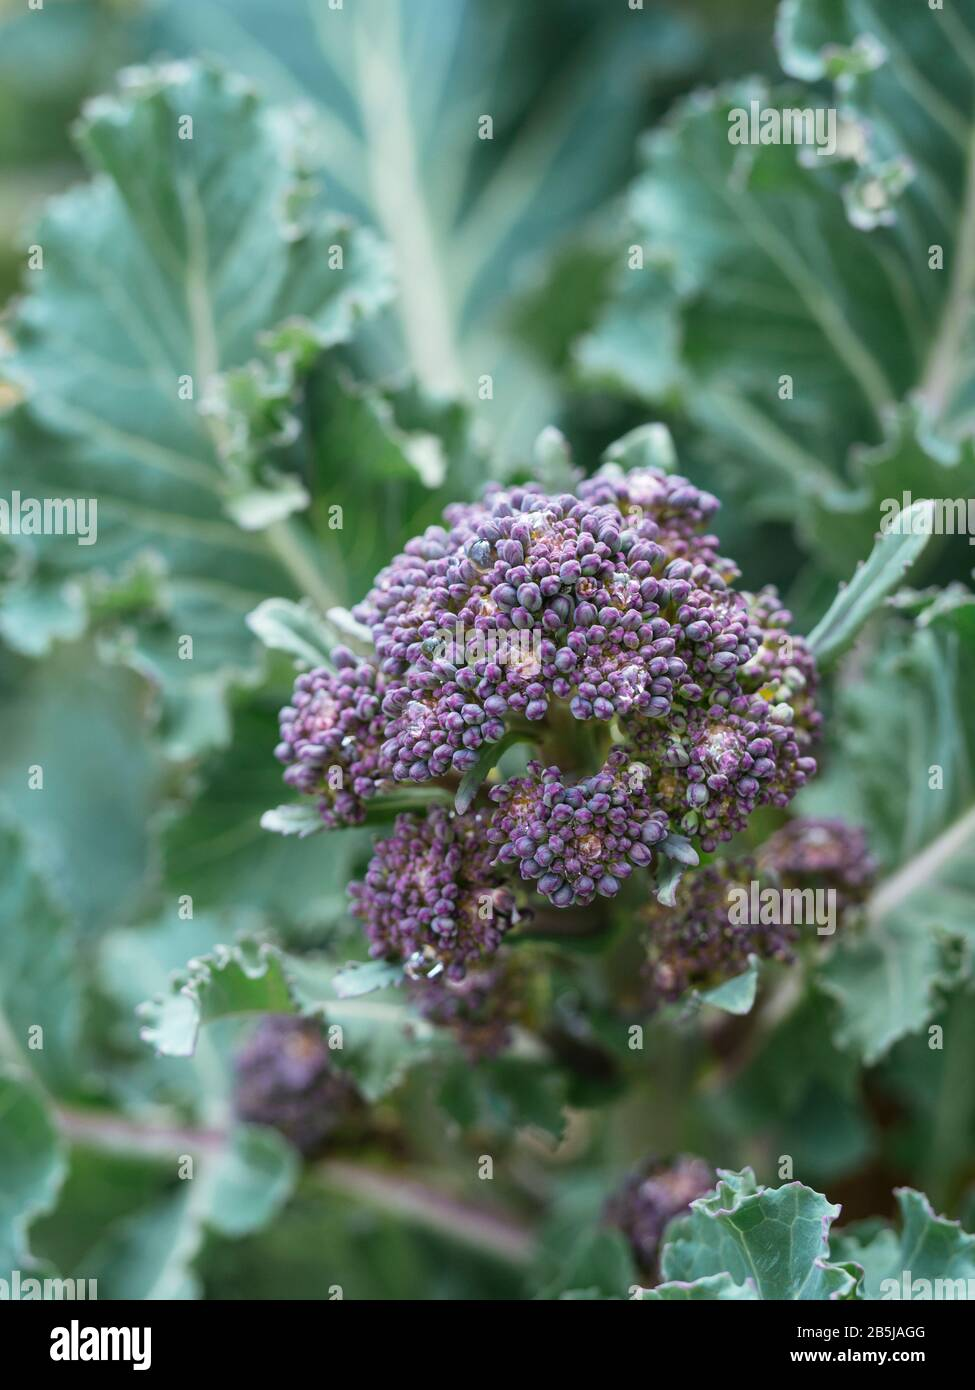 Early Purple Sprouting Broccoli growing in a vegetable garden in March. Stock Photo